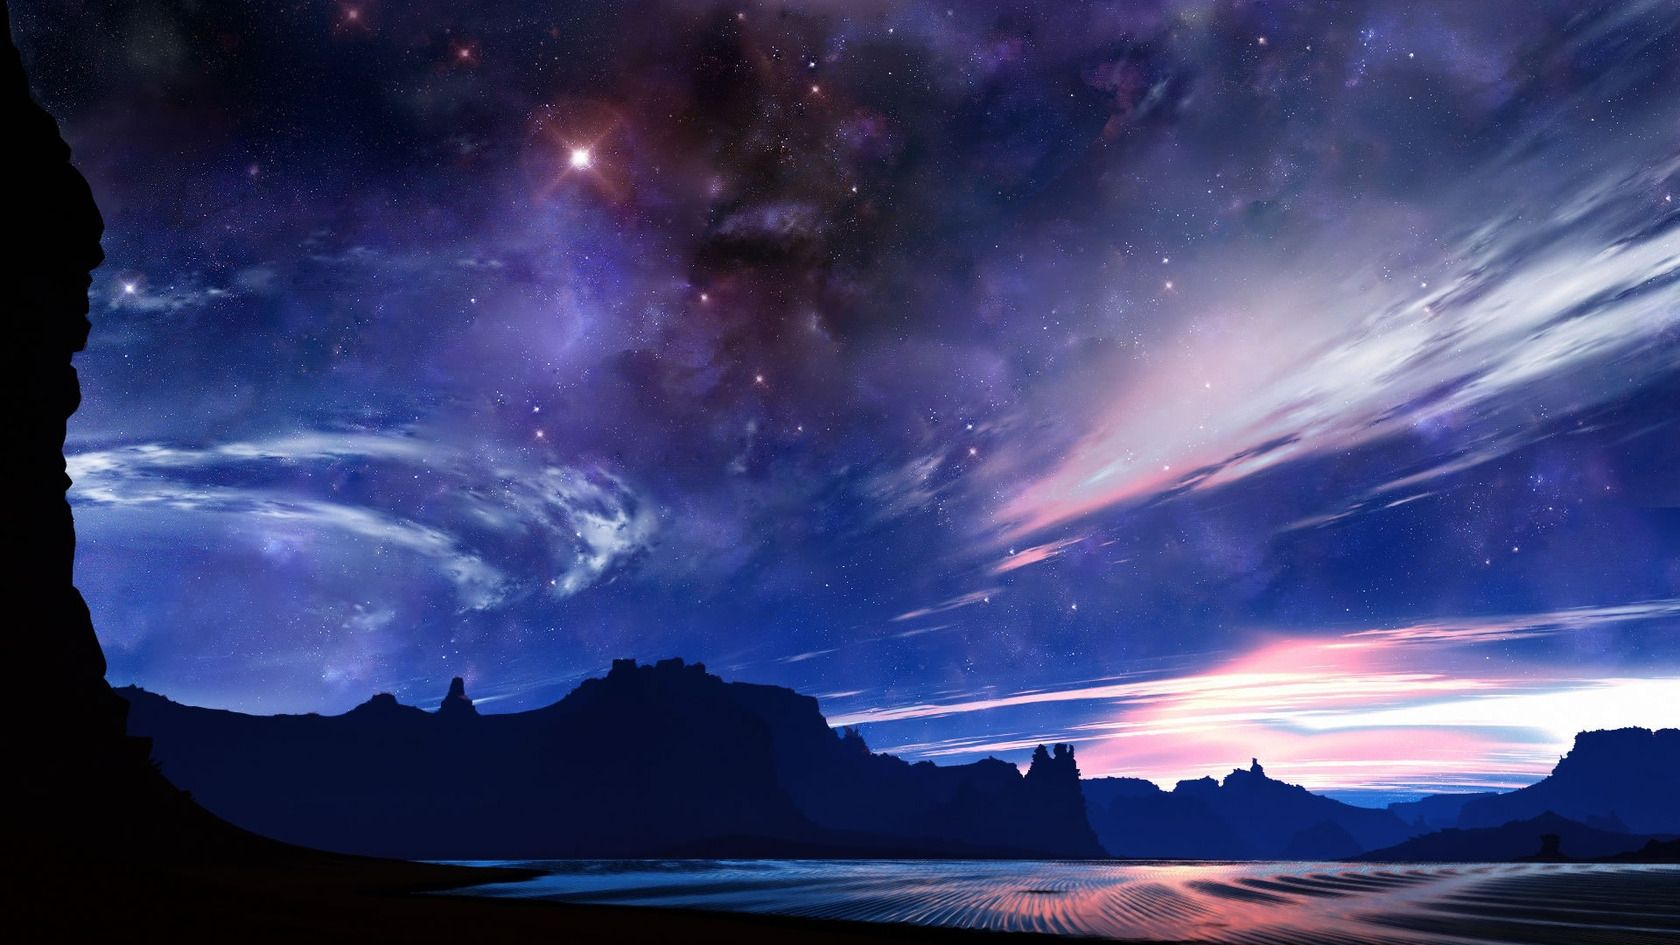 Desert Night Sky High Definition Hd Wallpaper Other Forkyu Com Sky Images Aesthetic Desktop Wallpaper Night Skies